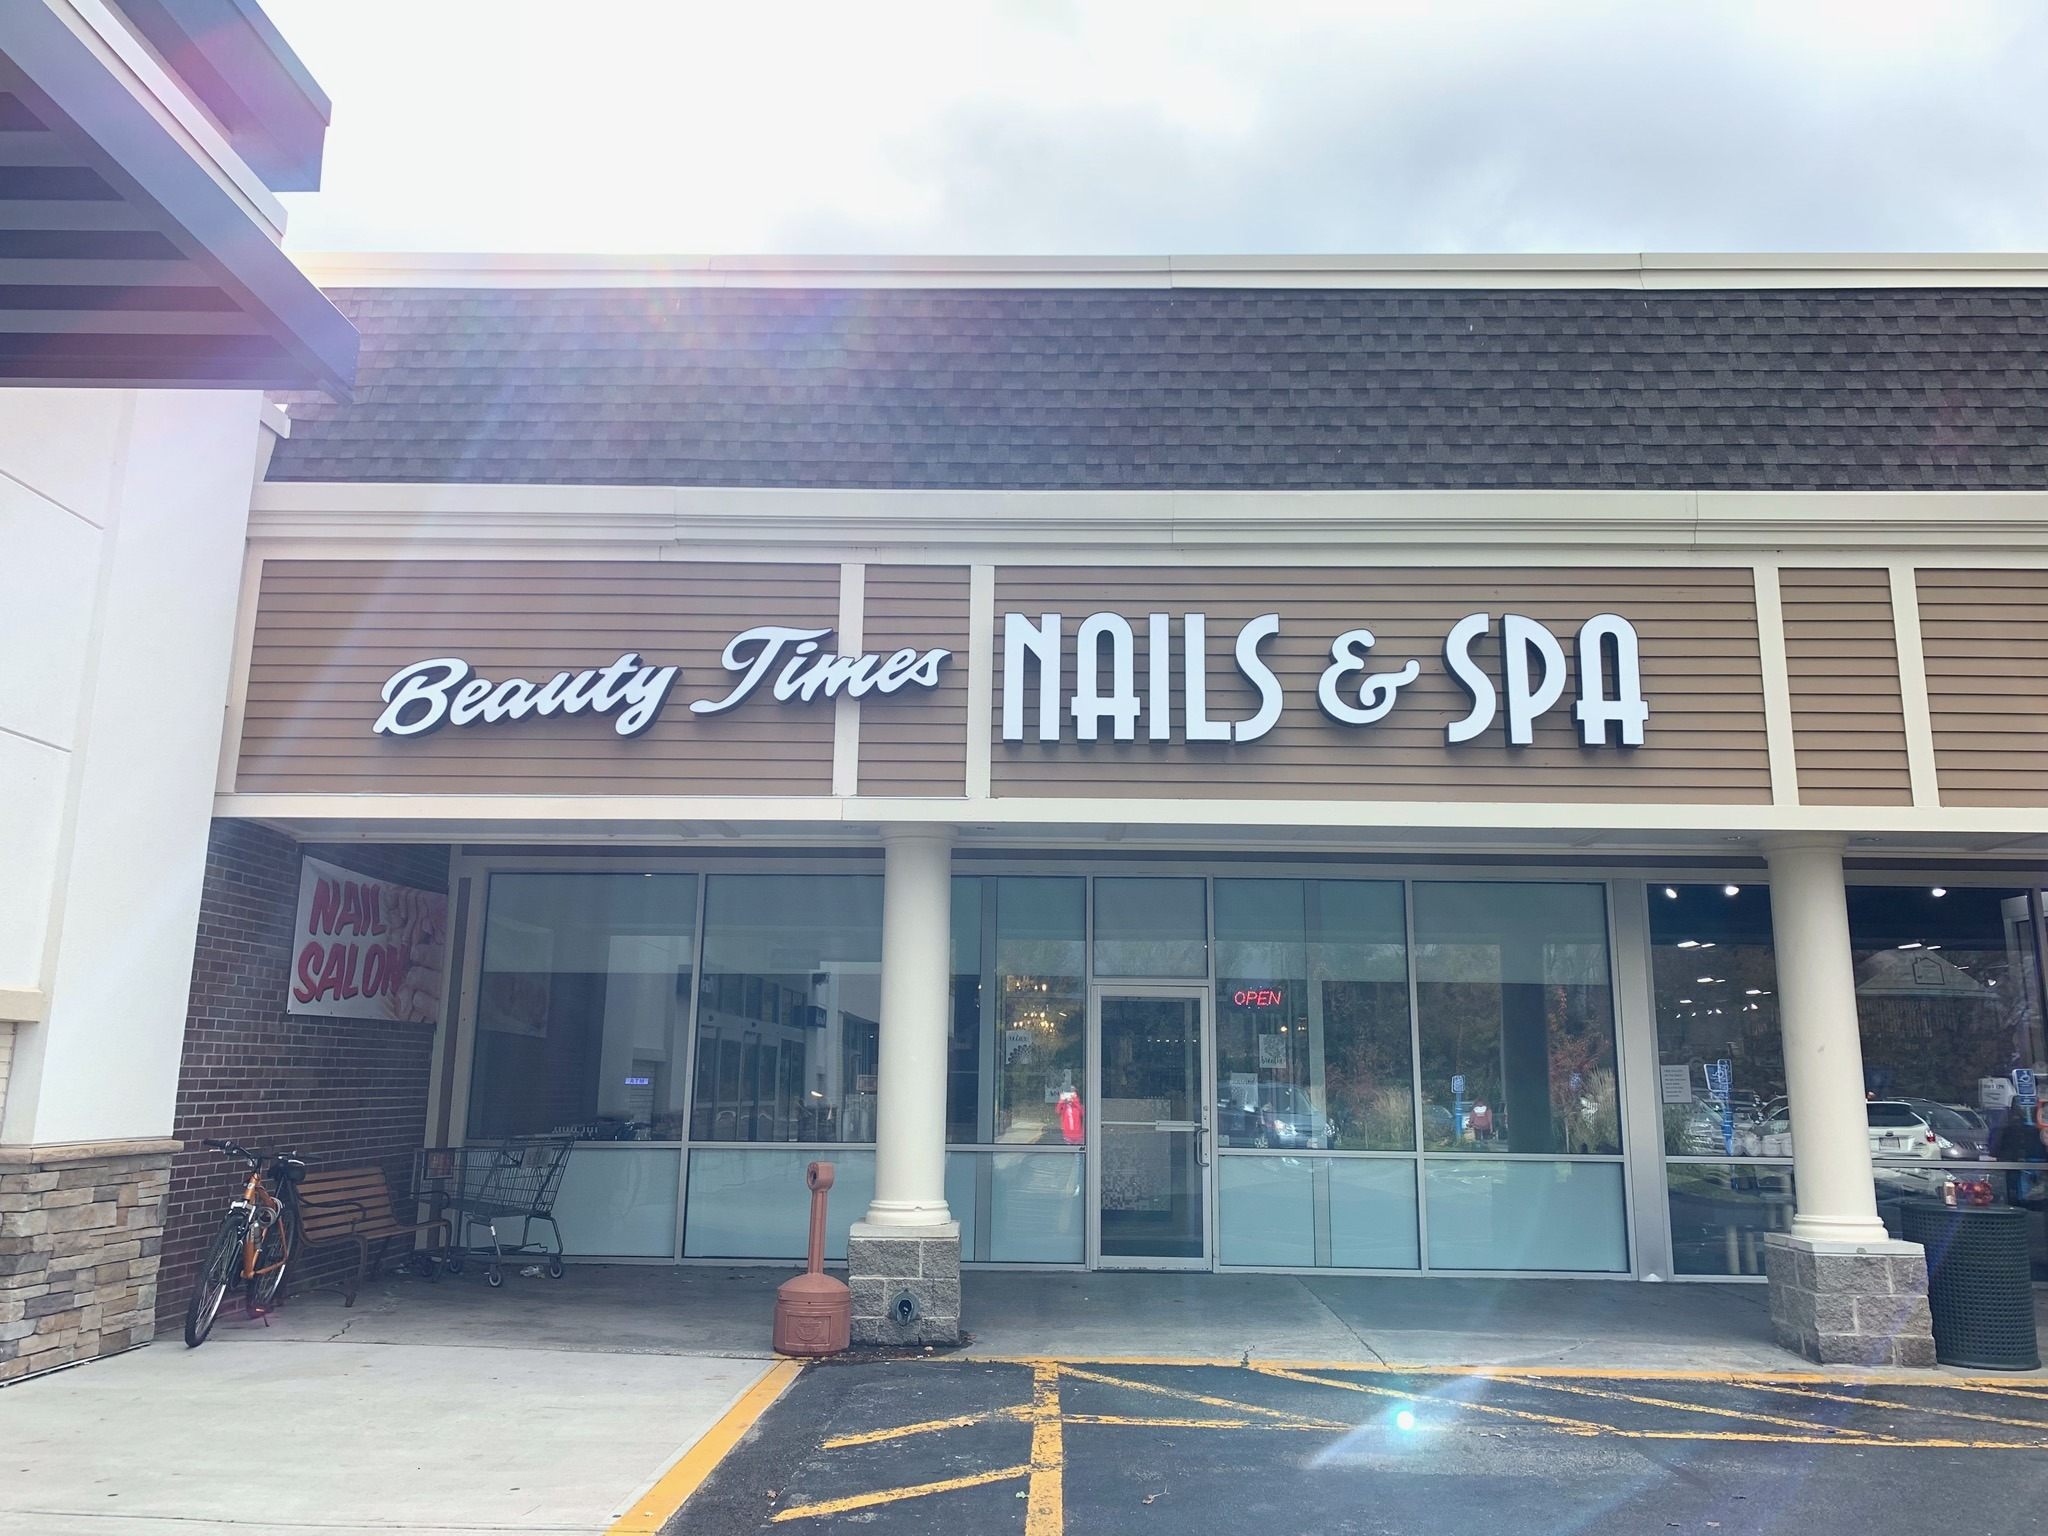 This Barrington Plaza Commercial Property Lease was handled by Blackline Retail Group. If you're looking for commercial space for rent in Barrington Plaza, we can help.